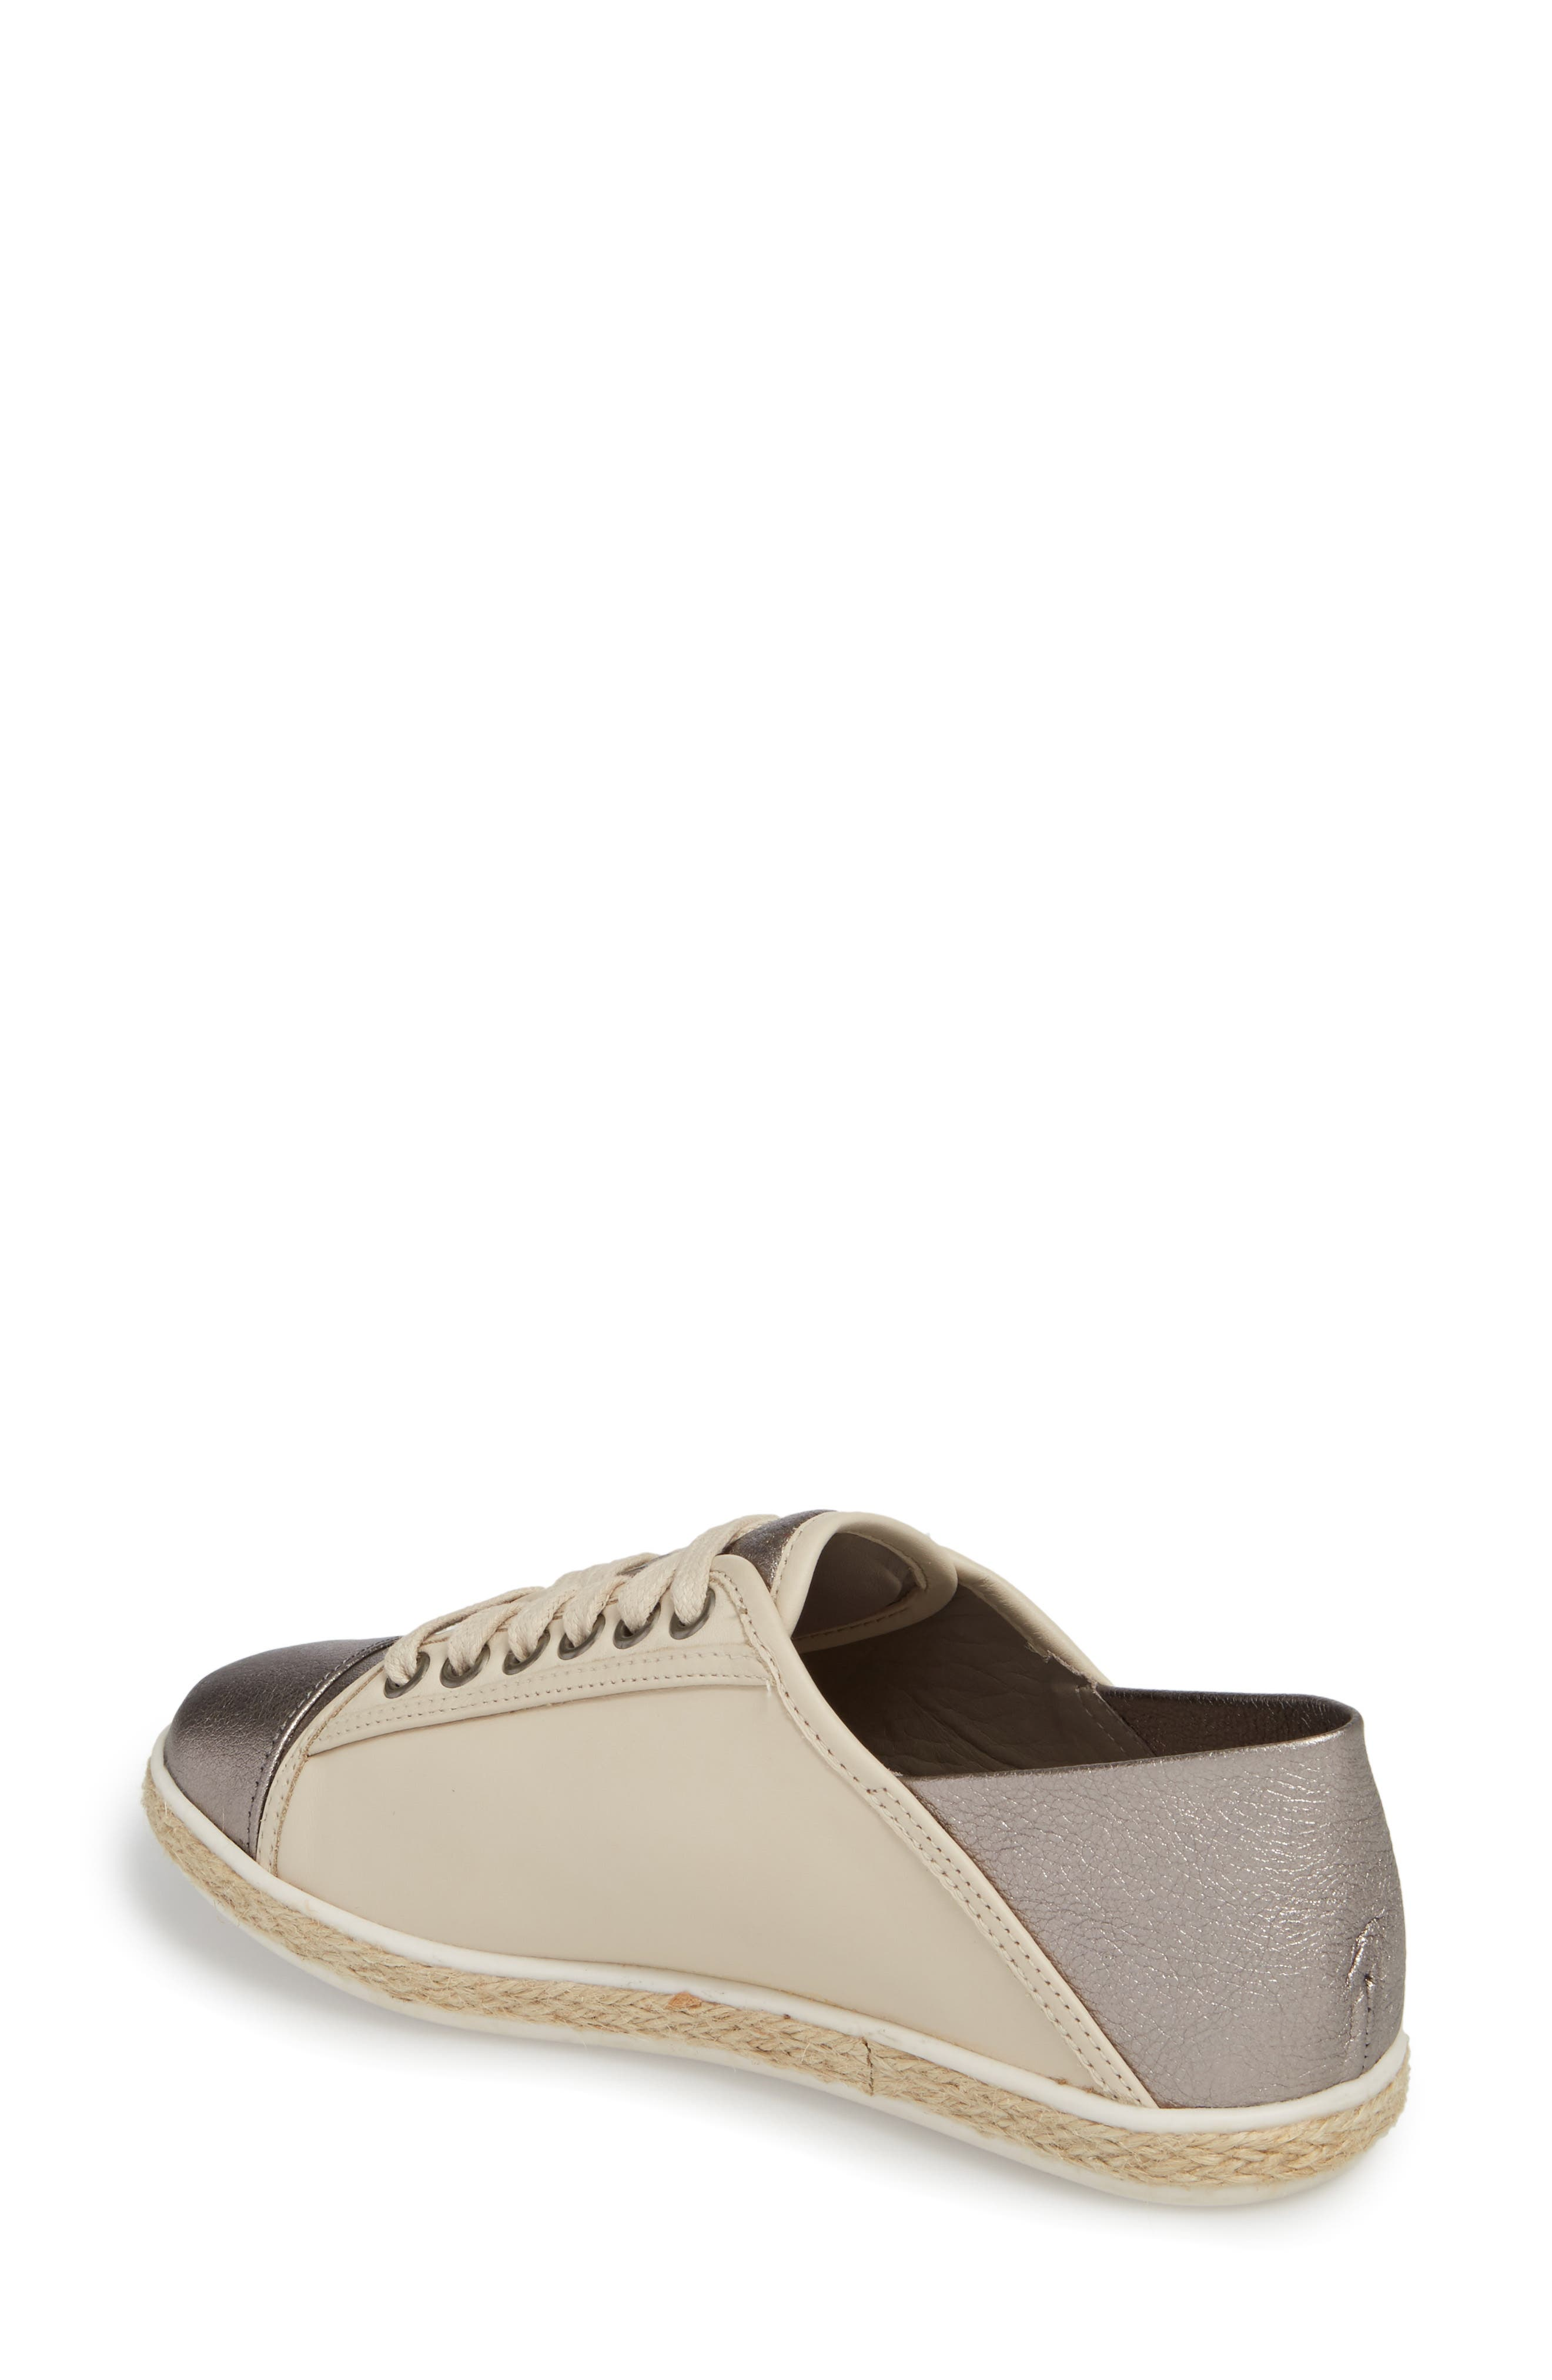 Buddy Convertible Heel Sneaker,                             Alternate thumbnail 2, color,                             GUNMETAL LEATHER